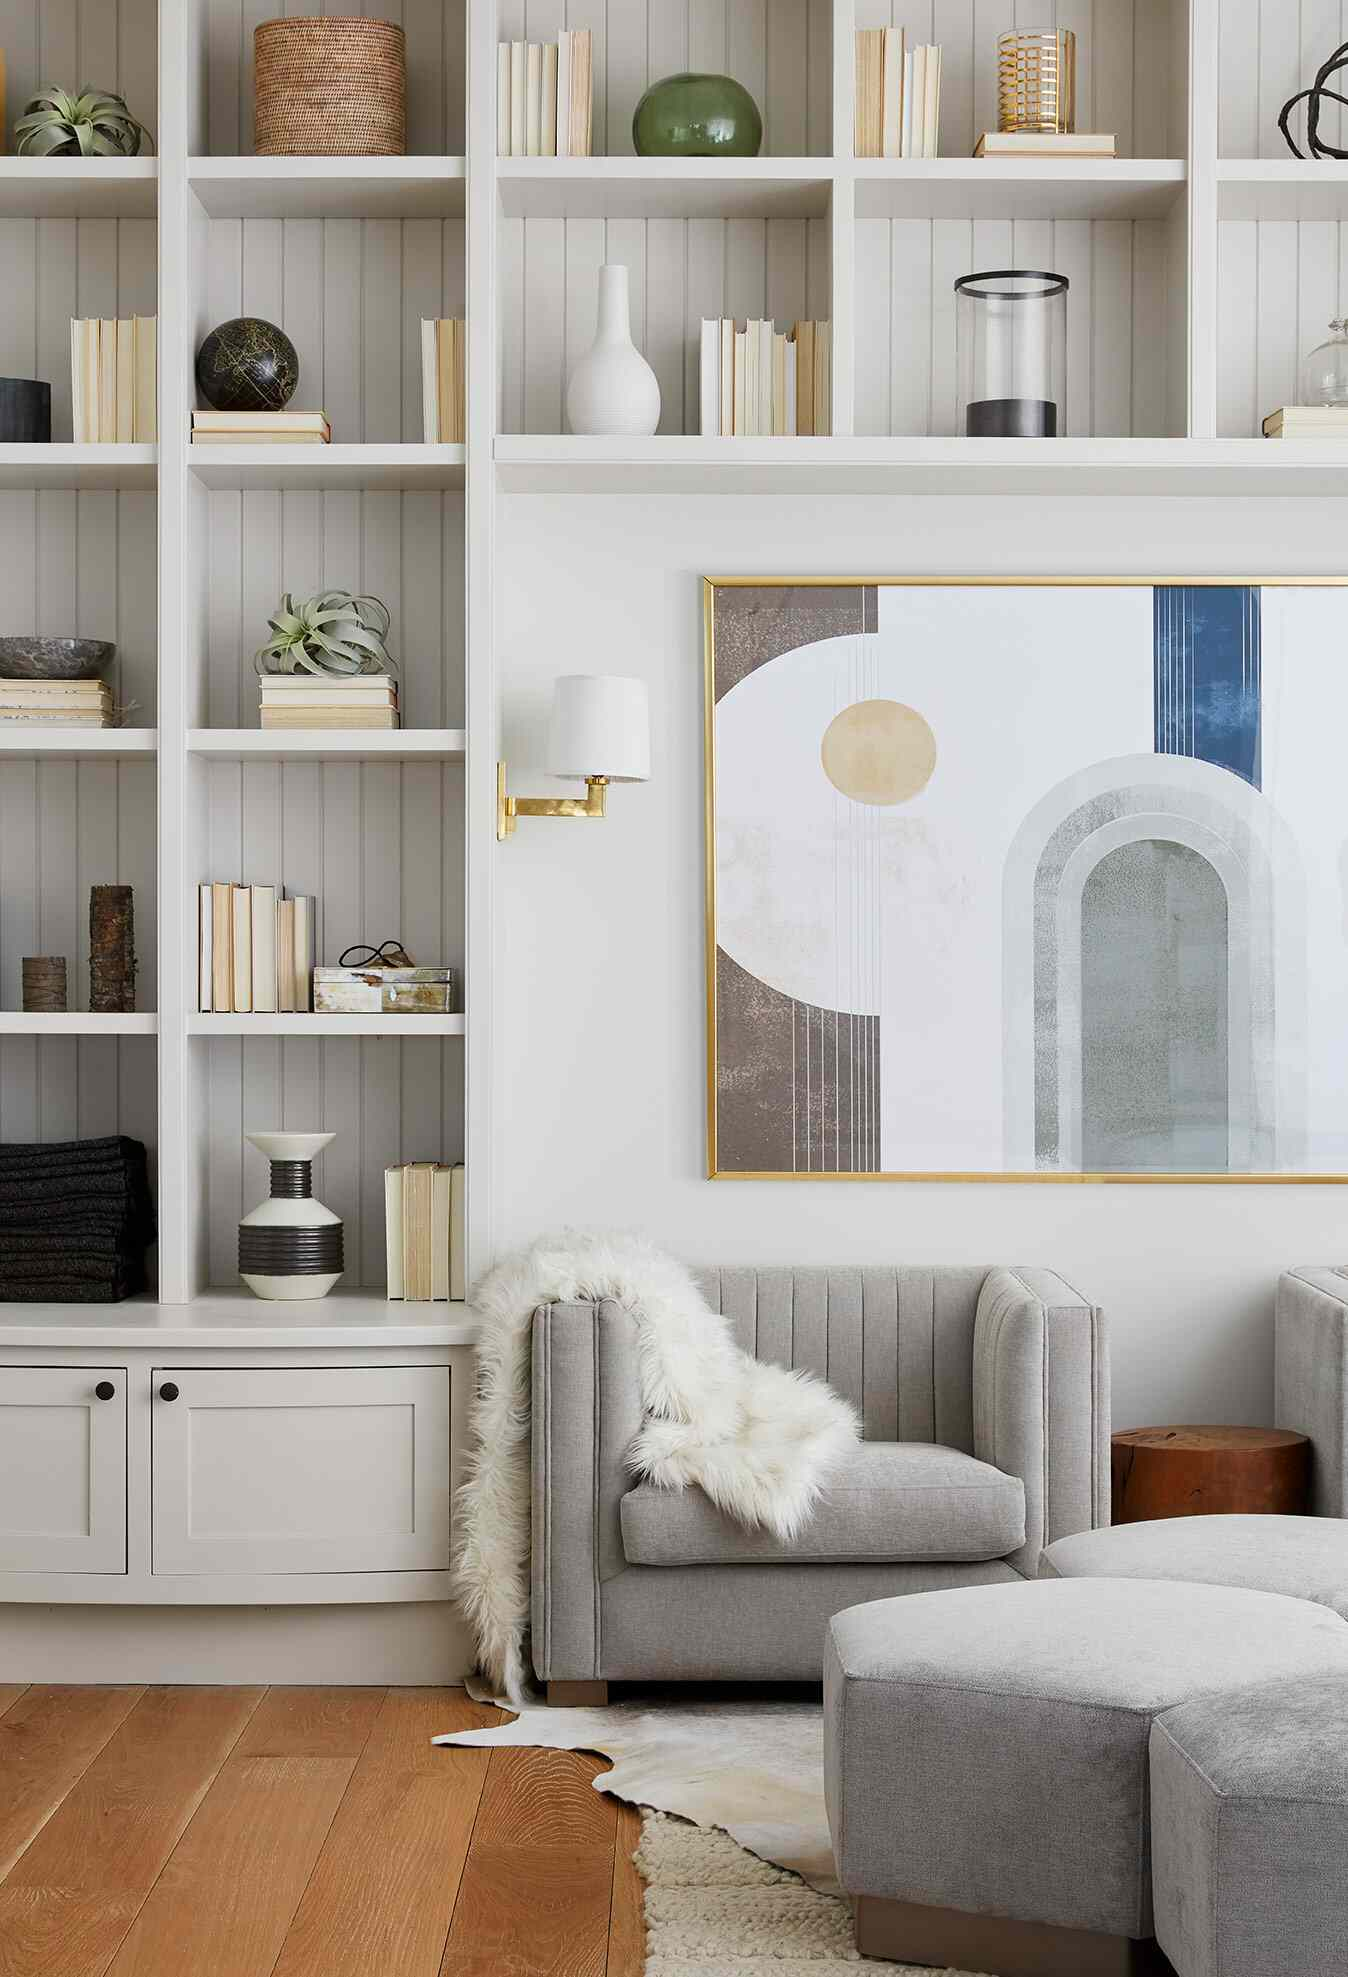 A living room with white bookshelf-lined walls that have been adorned with books and baubles